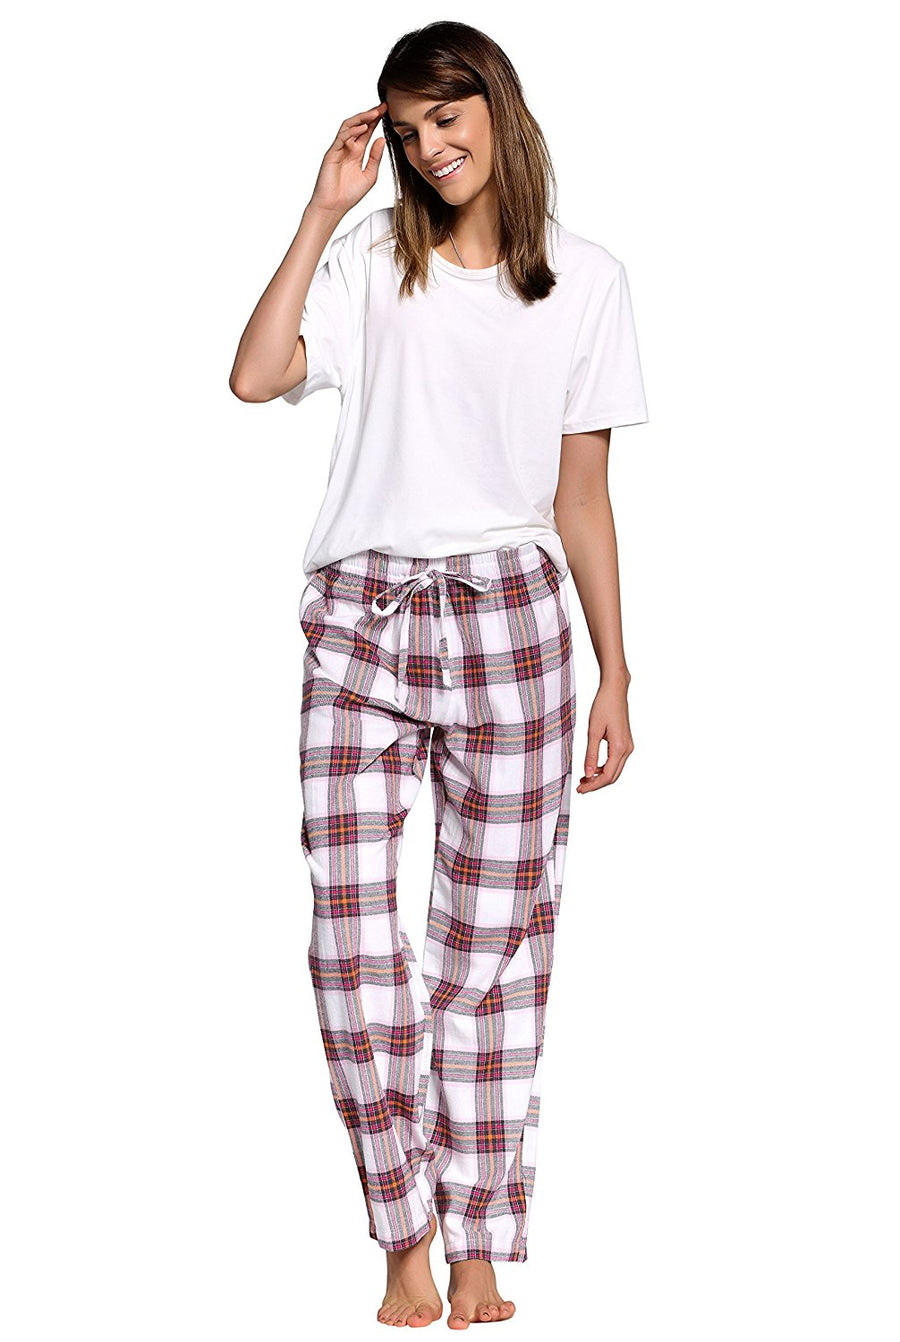 CYZ Women's 100% Cotton Super Soft Flannel Plaid Pajama/Louge Pants